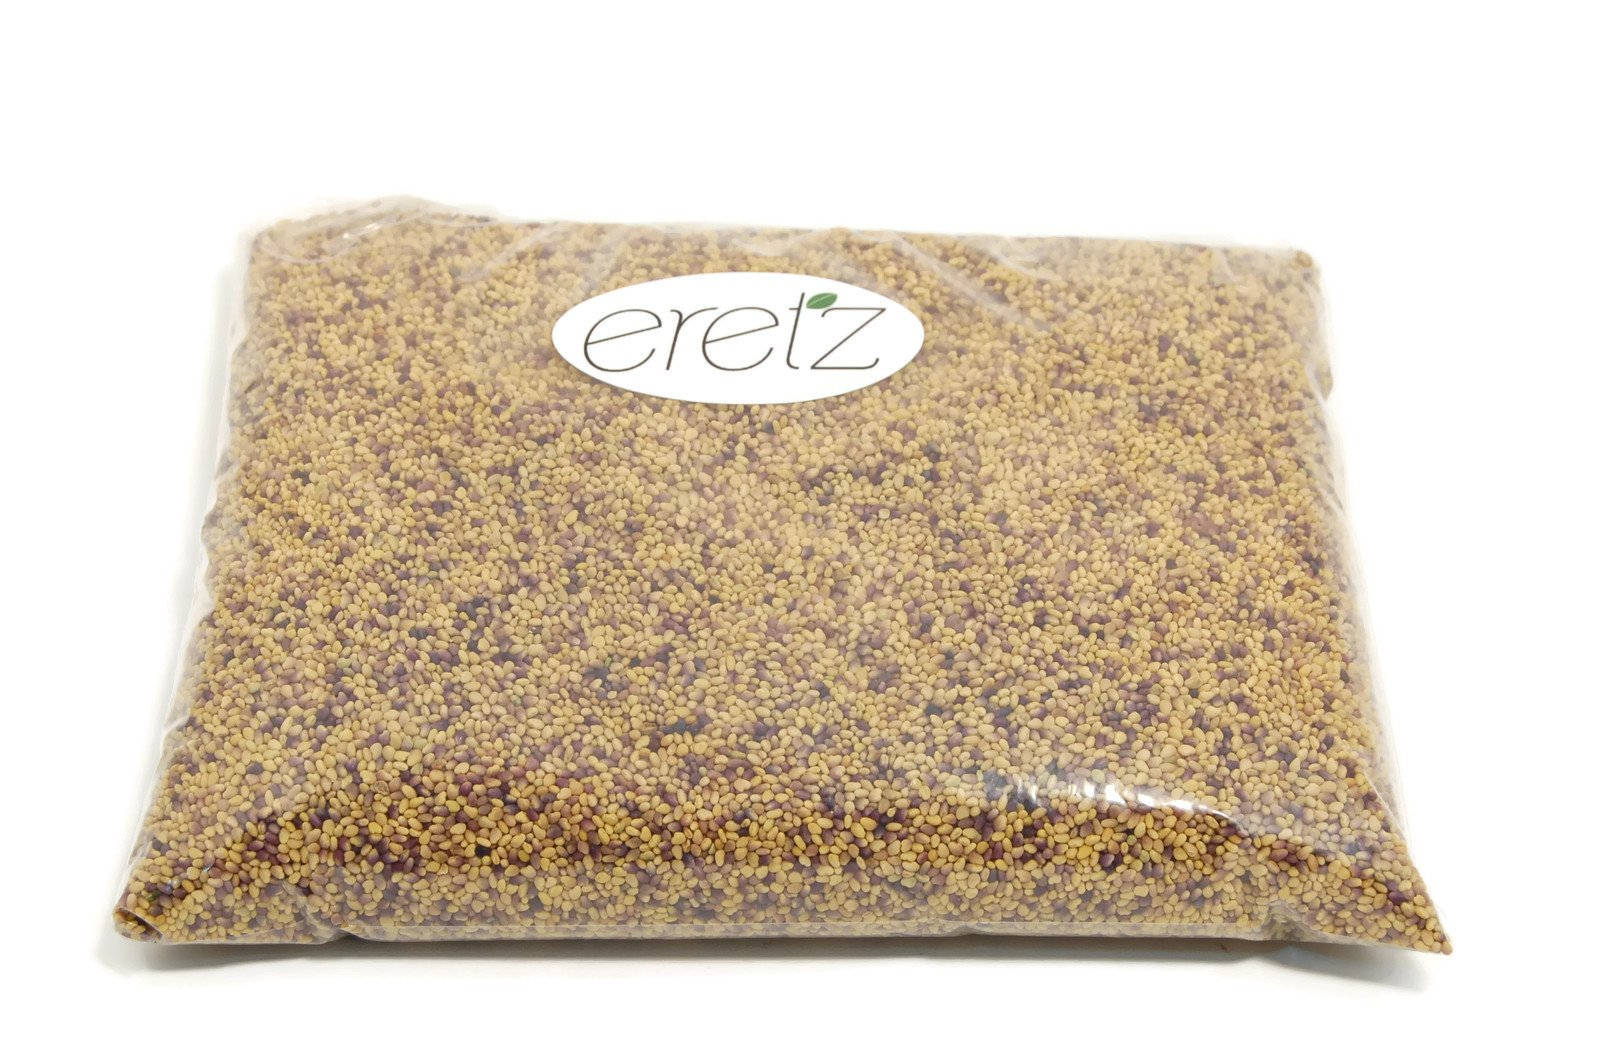 Red Clover Seed by Eretz - Willamette Valley, Oregon Grown (10lbs) by Eretz (Image #3)